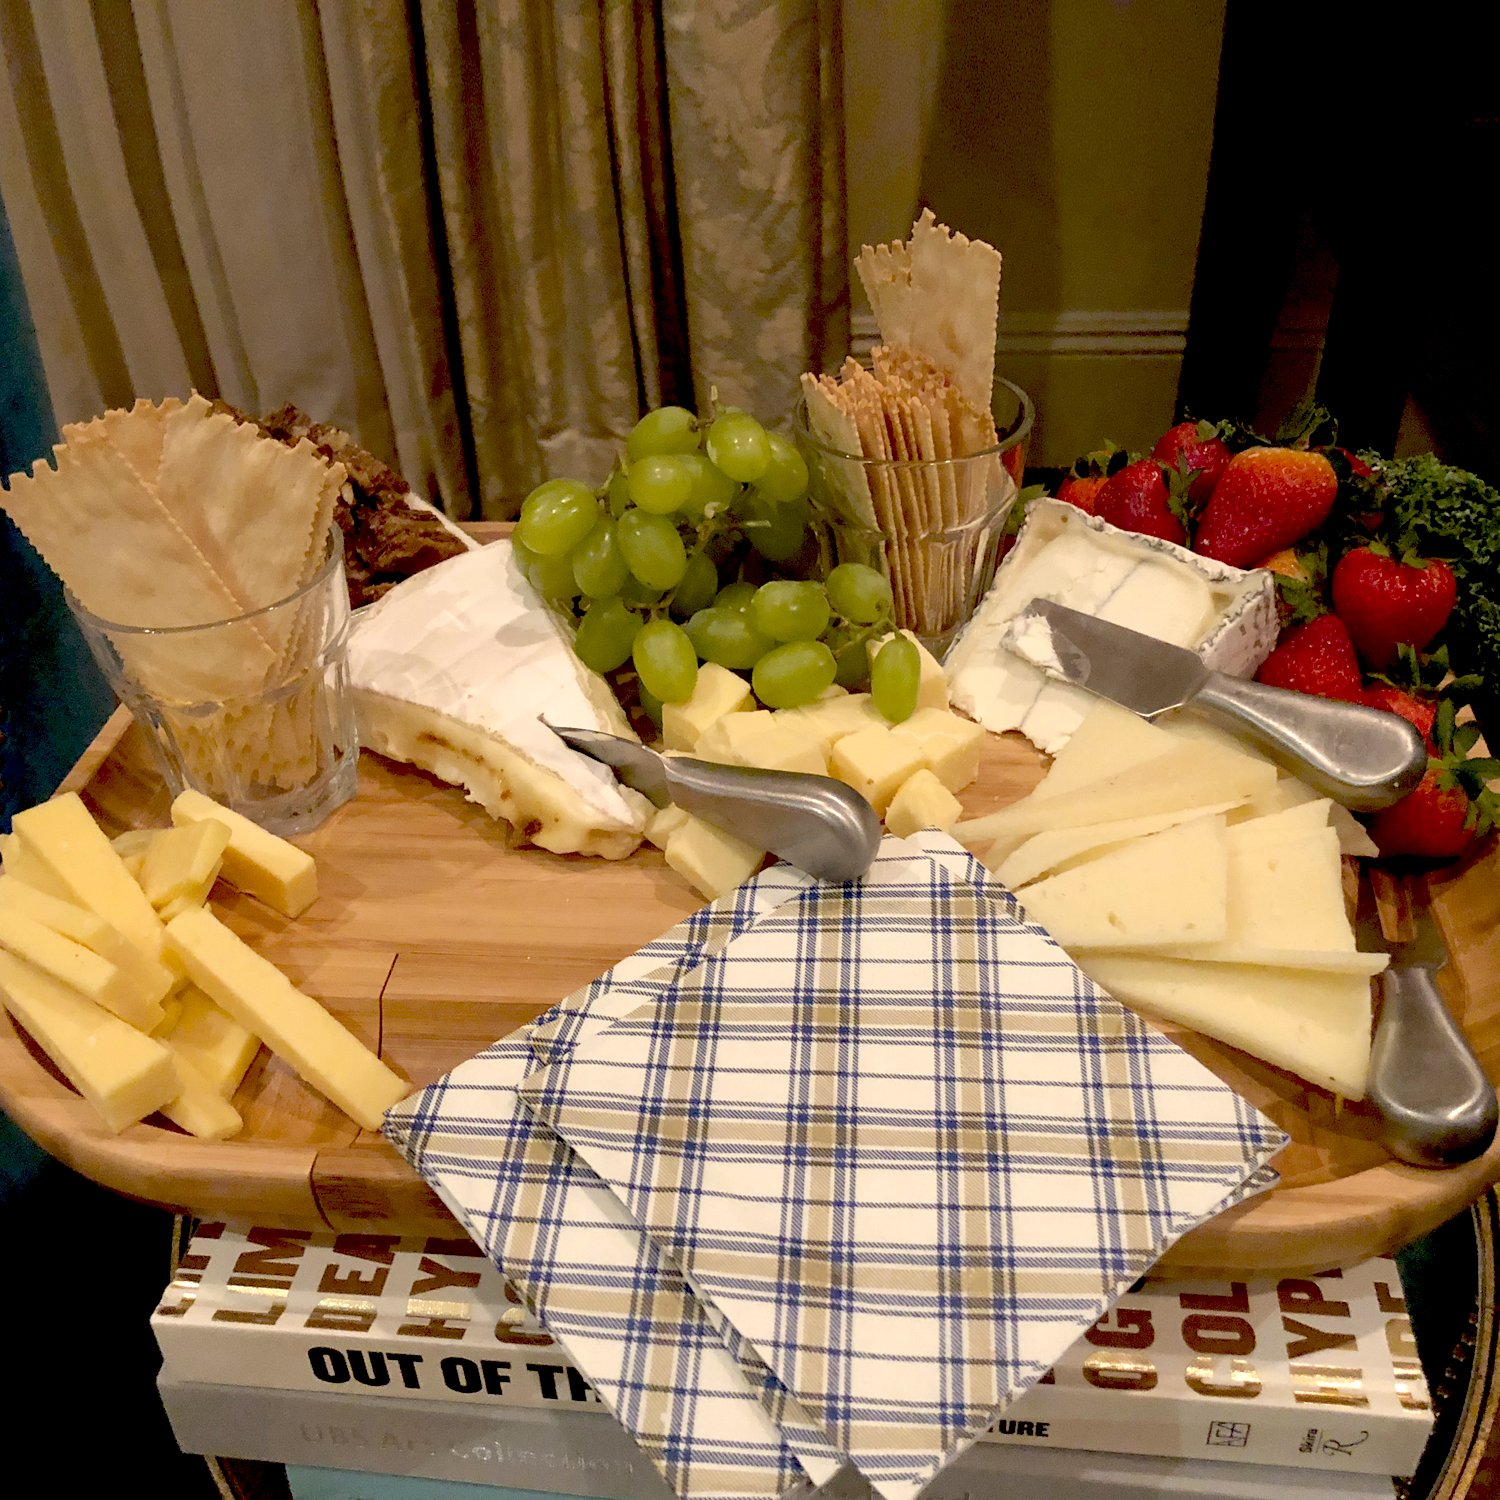 Picnic at Ascot -The''Original'' Large Bamboo Cheese Board with Cracker Groove & Integrated Drawer with 4 Piece Knife Set & Cheese Markers- Designed By Picnic at Ascot in the USA by Picnic at Ascot (Image #6)